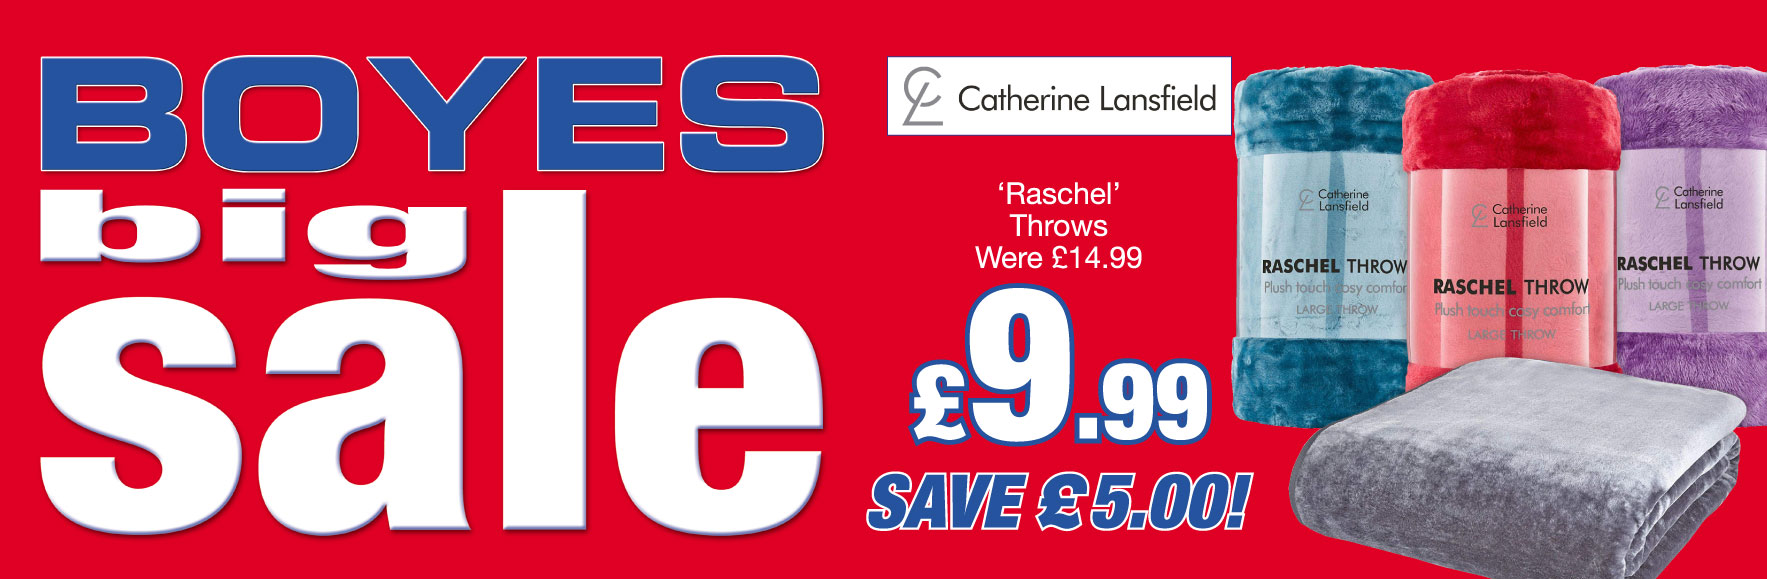 Catherine Lansfield Raschel Throws. Were £14.99. ONLY £9.99. Save £5!